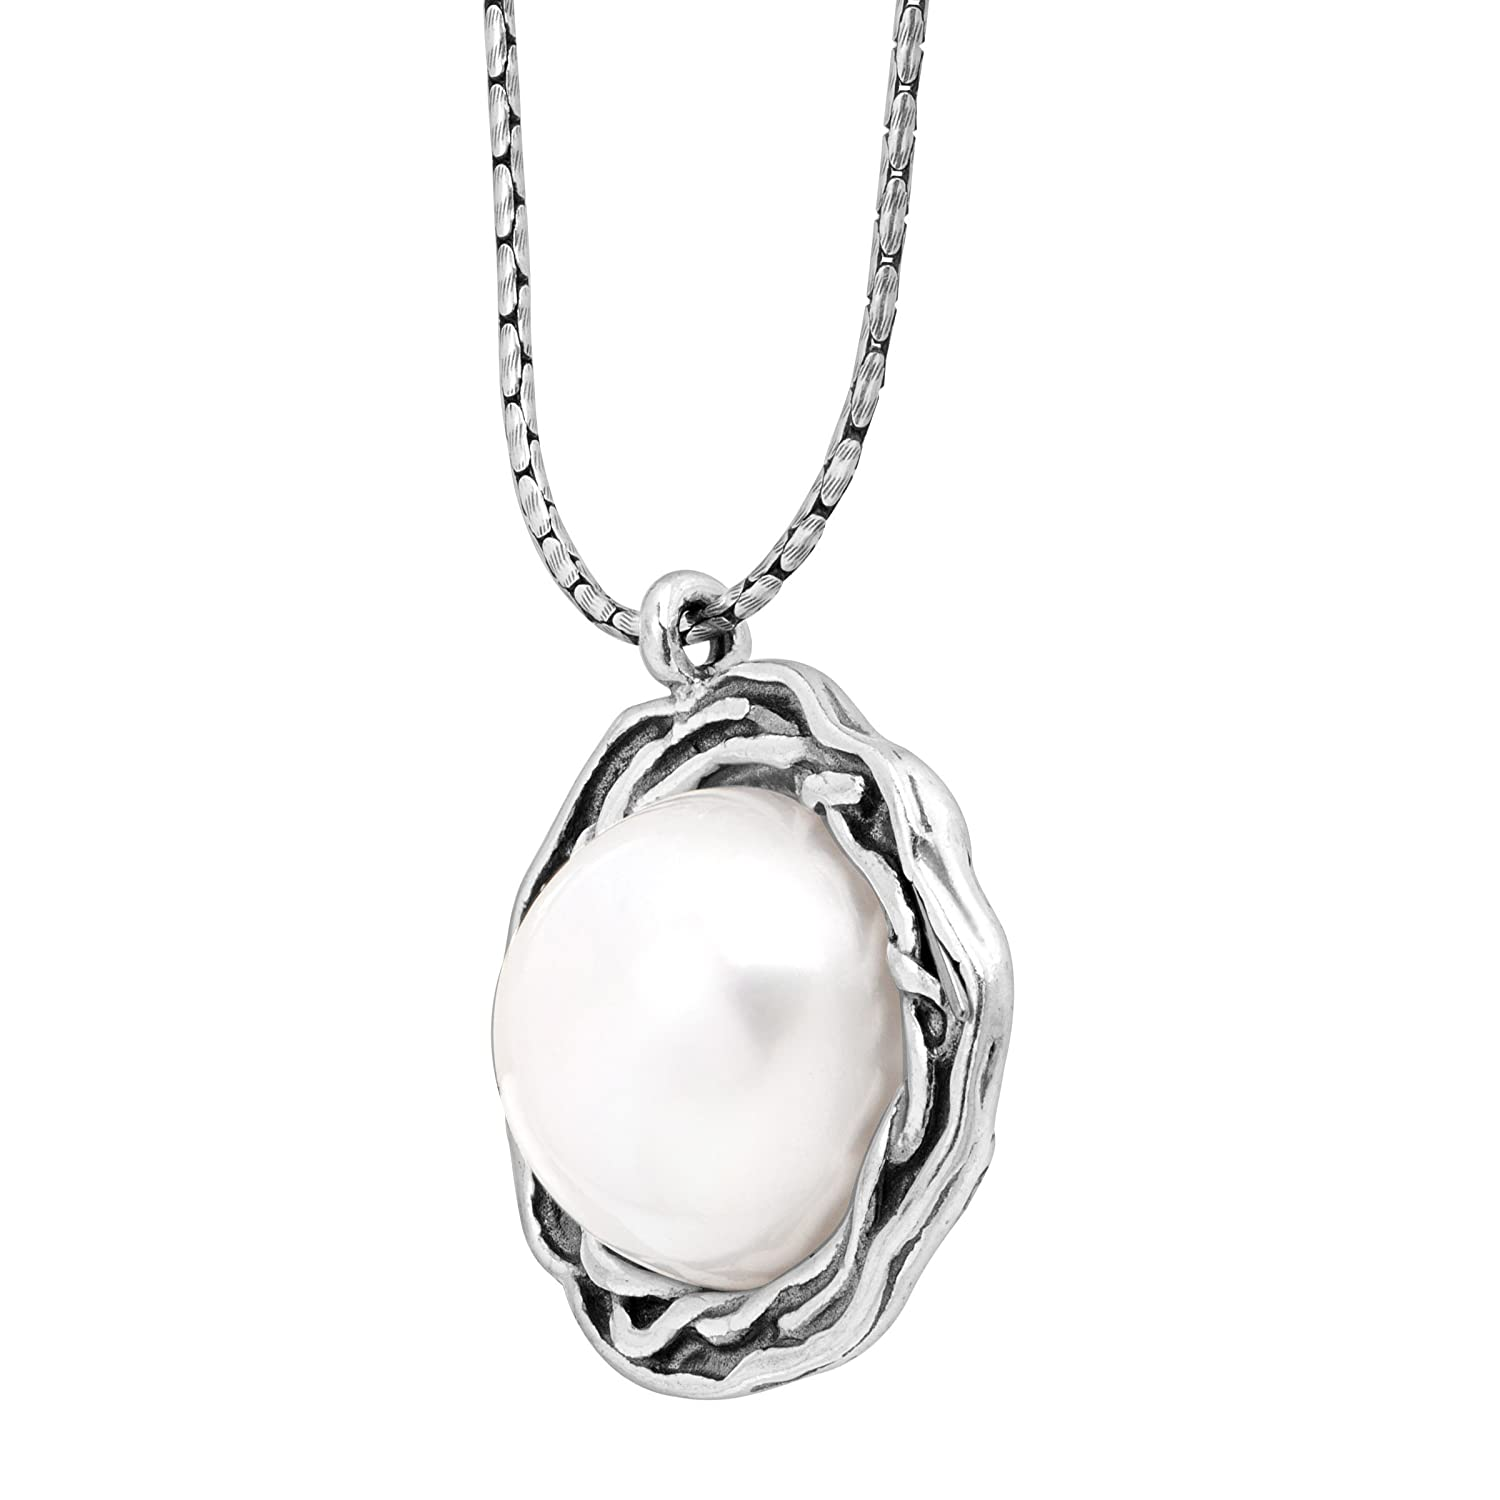 Silpada Return To Roots 11.5-12 mm Freshwater Cultured Pearl Pendant Necklace in Sterling Silver